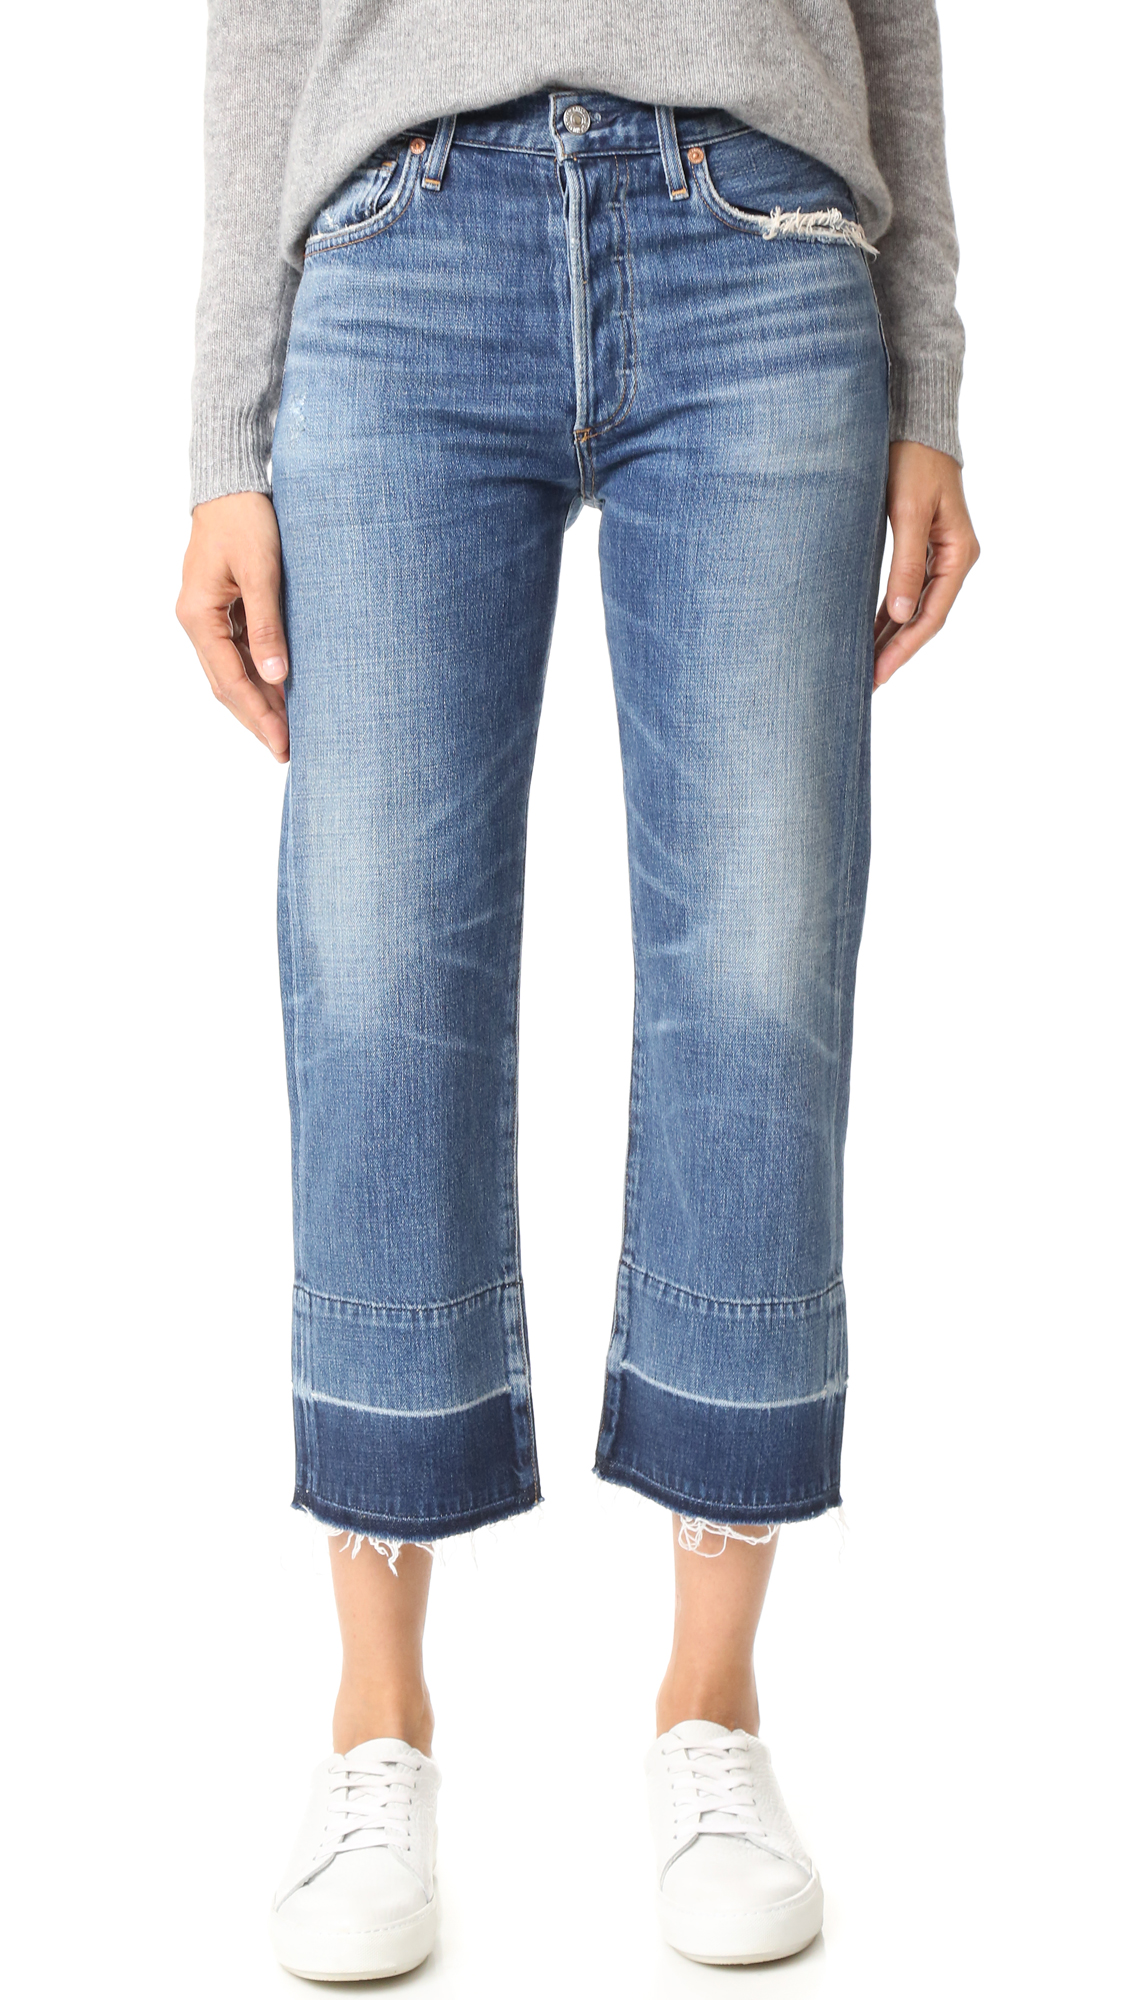 A raw, undone hem complements the relaxed feel of these long rise Citizens of Humanity jeans. Heavy fading and worn spots. 5 pocket styling. Button fly. Fabric: Lightweight denim. 77% cotton/23% rayon. Wash cold. Made in the USA.